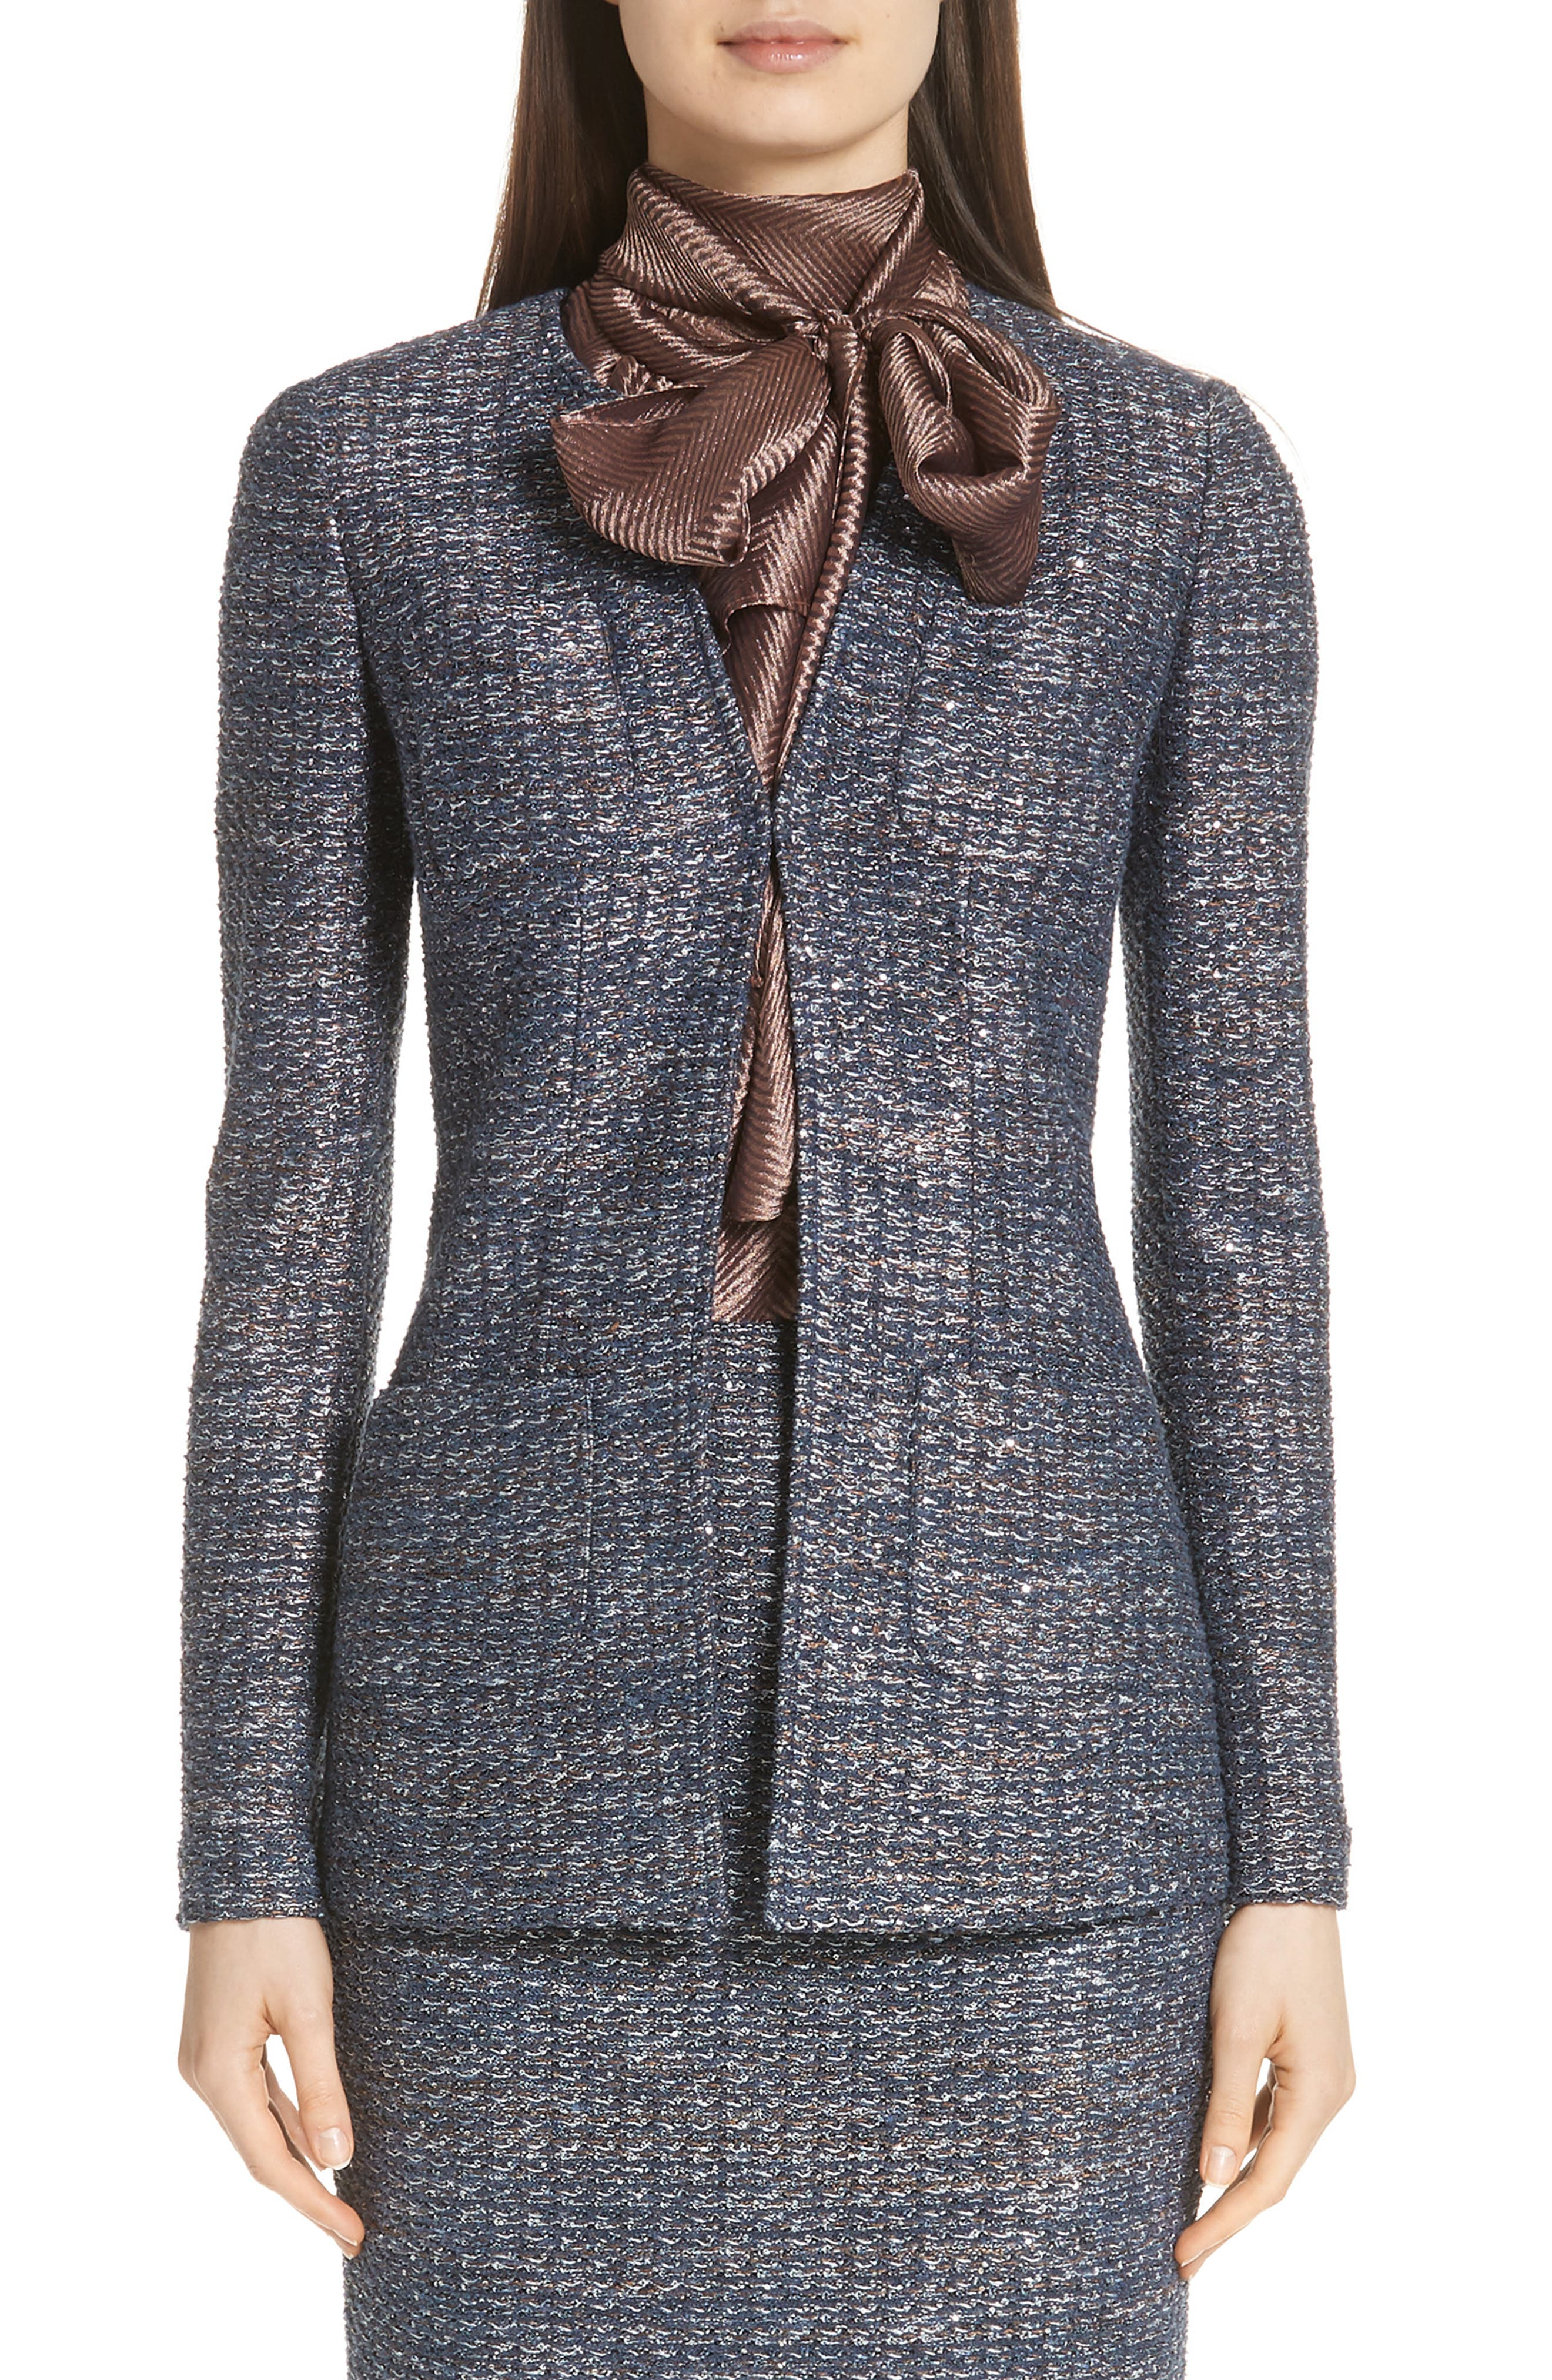 Copper Sequin Tweed Knit Jacket,                             Main thumbnail 1, color,                             410